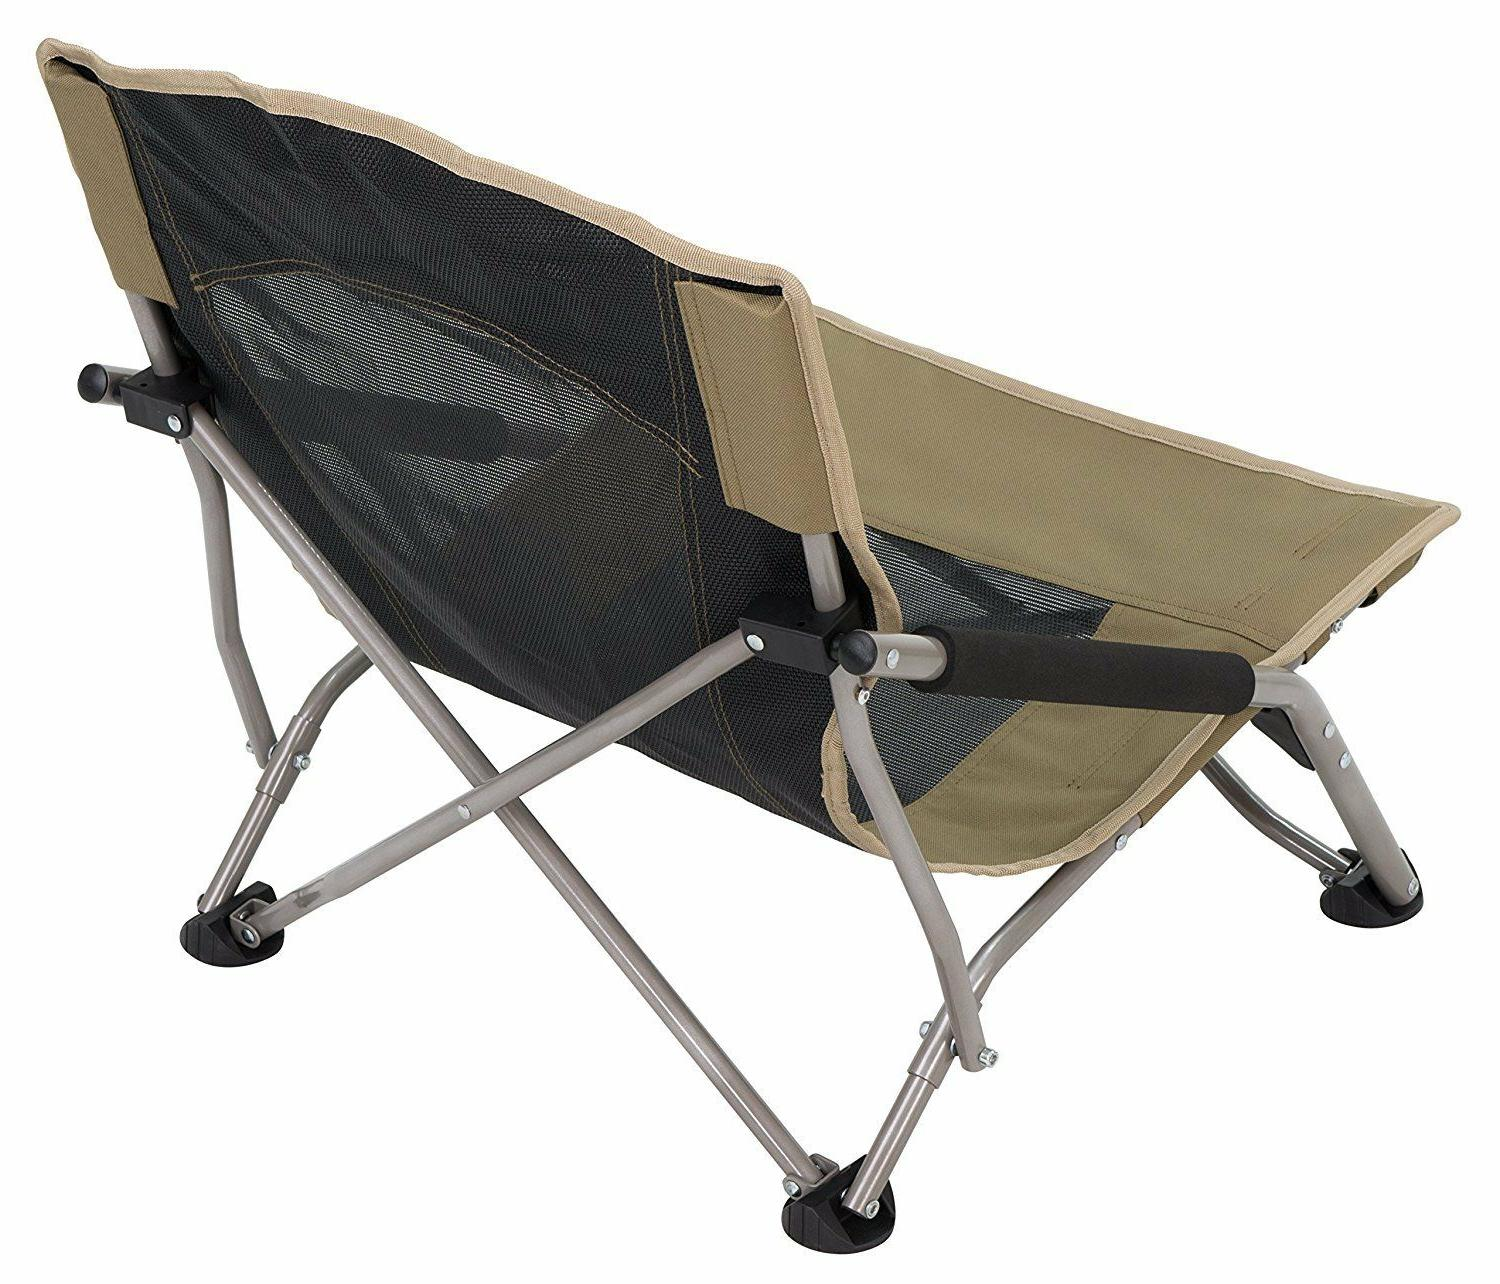 ALPS Mountaineering Rendezvous Chair, Camping, Khaki